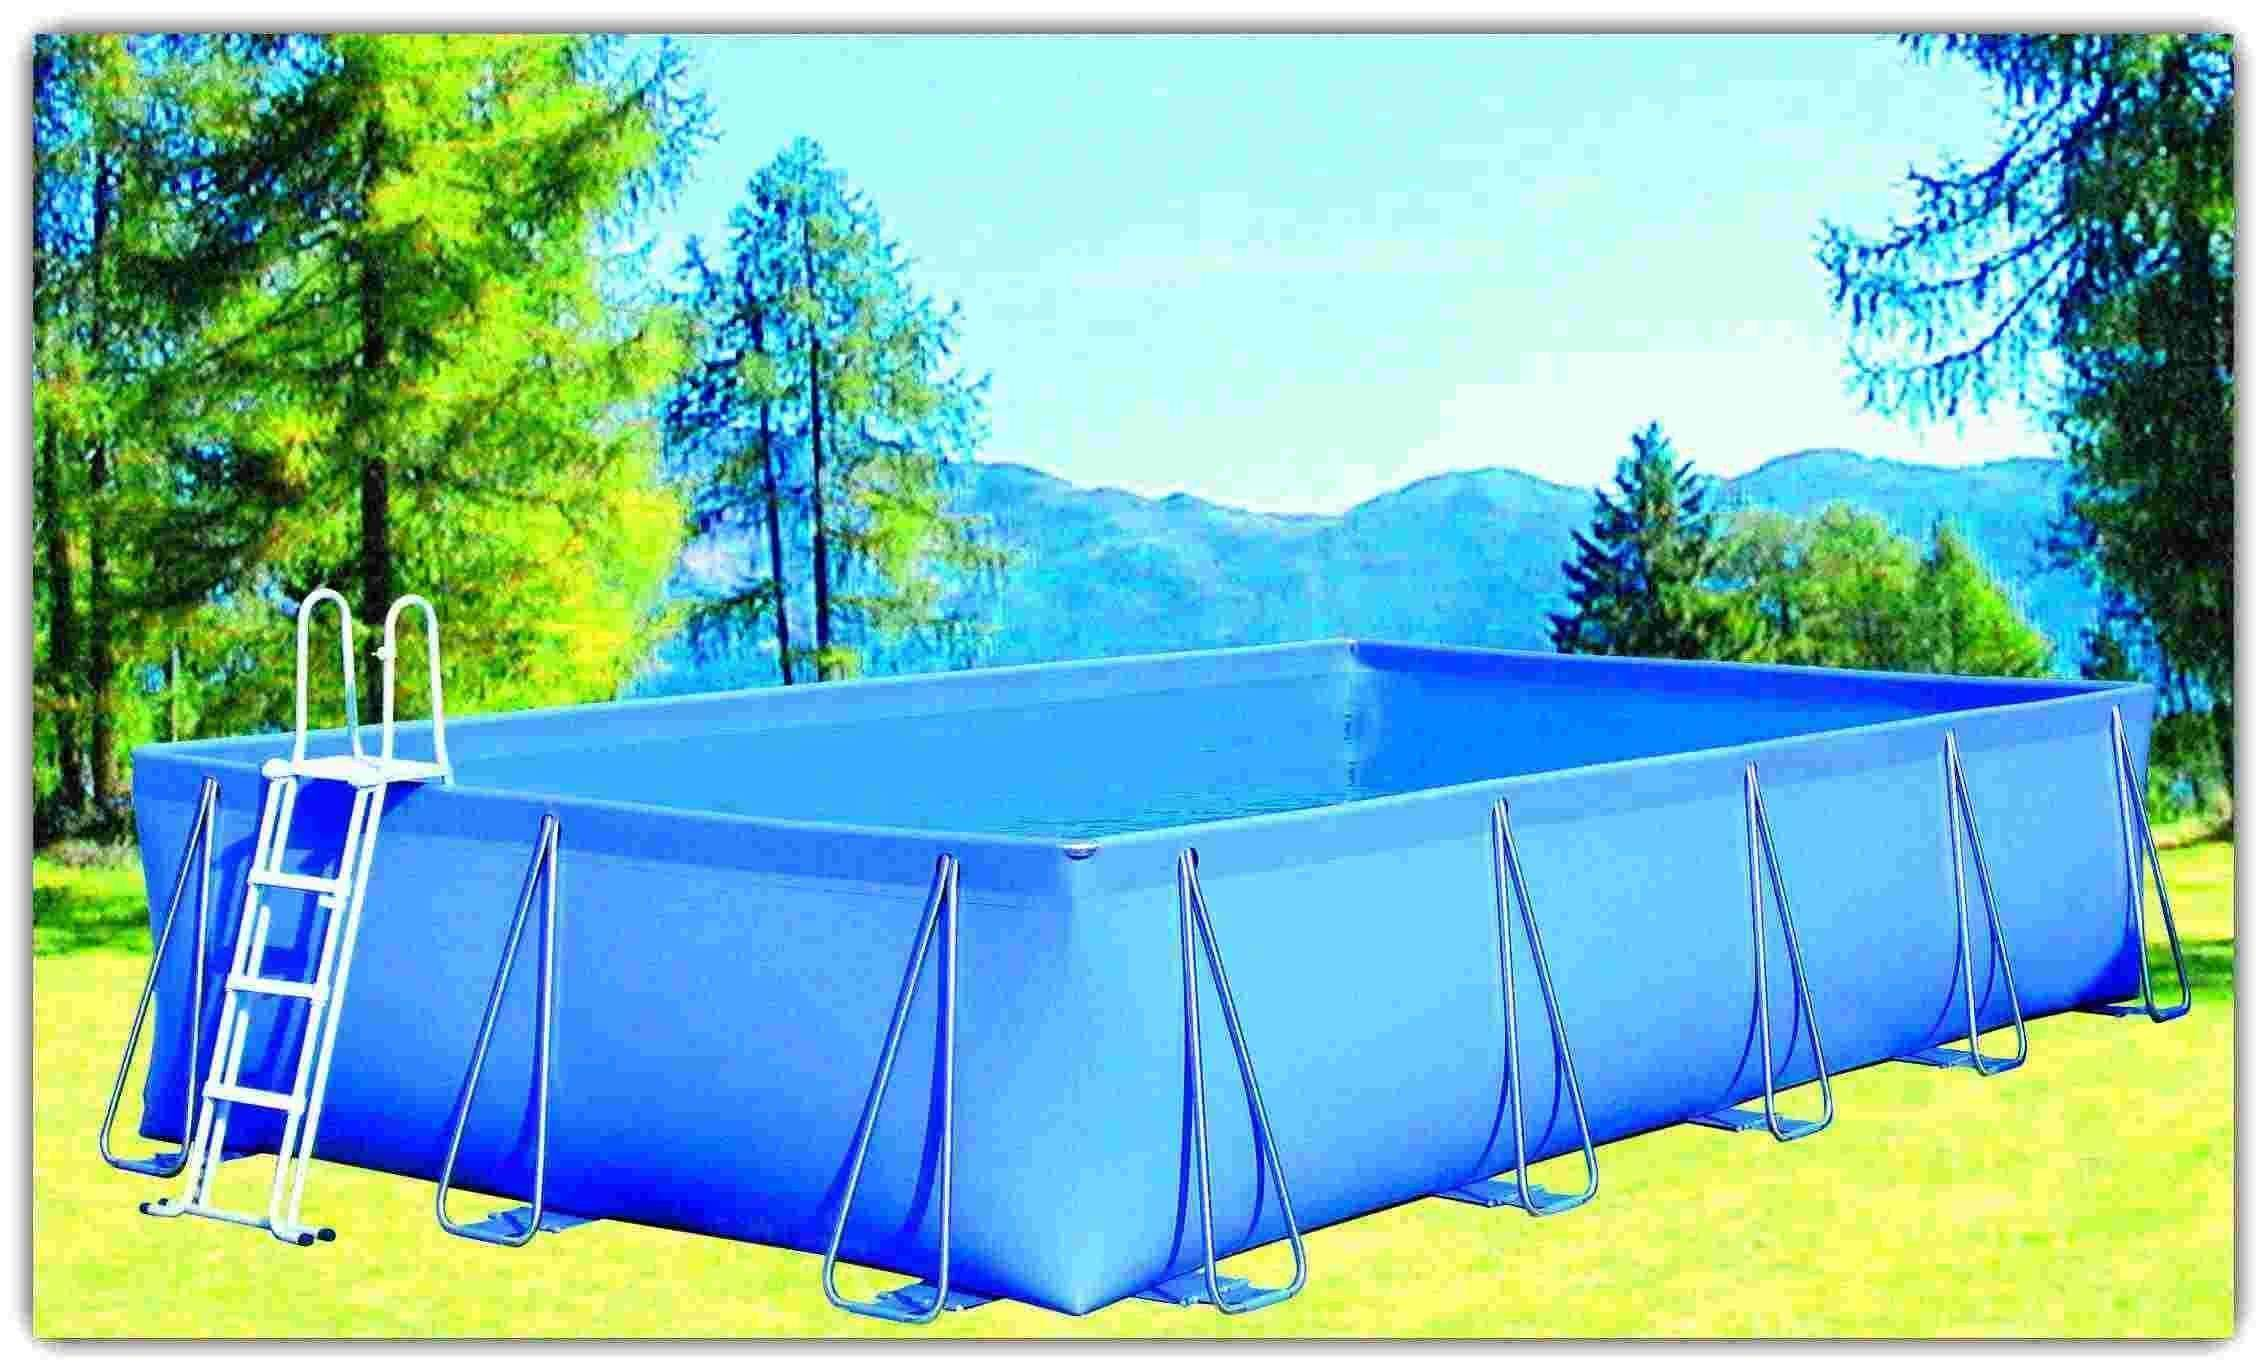 Above Ground Swimming Pools Buy From De Lorenzis New Line